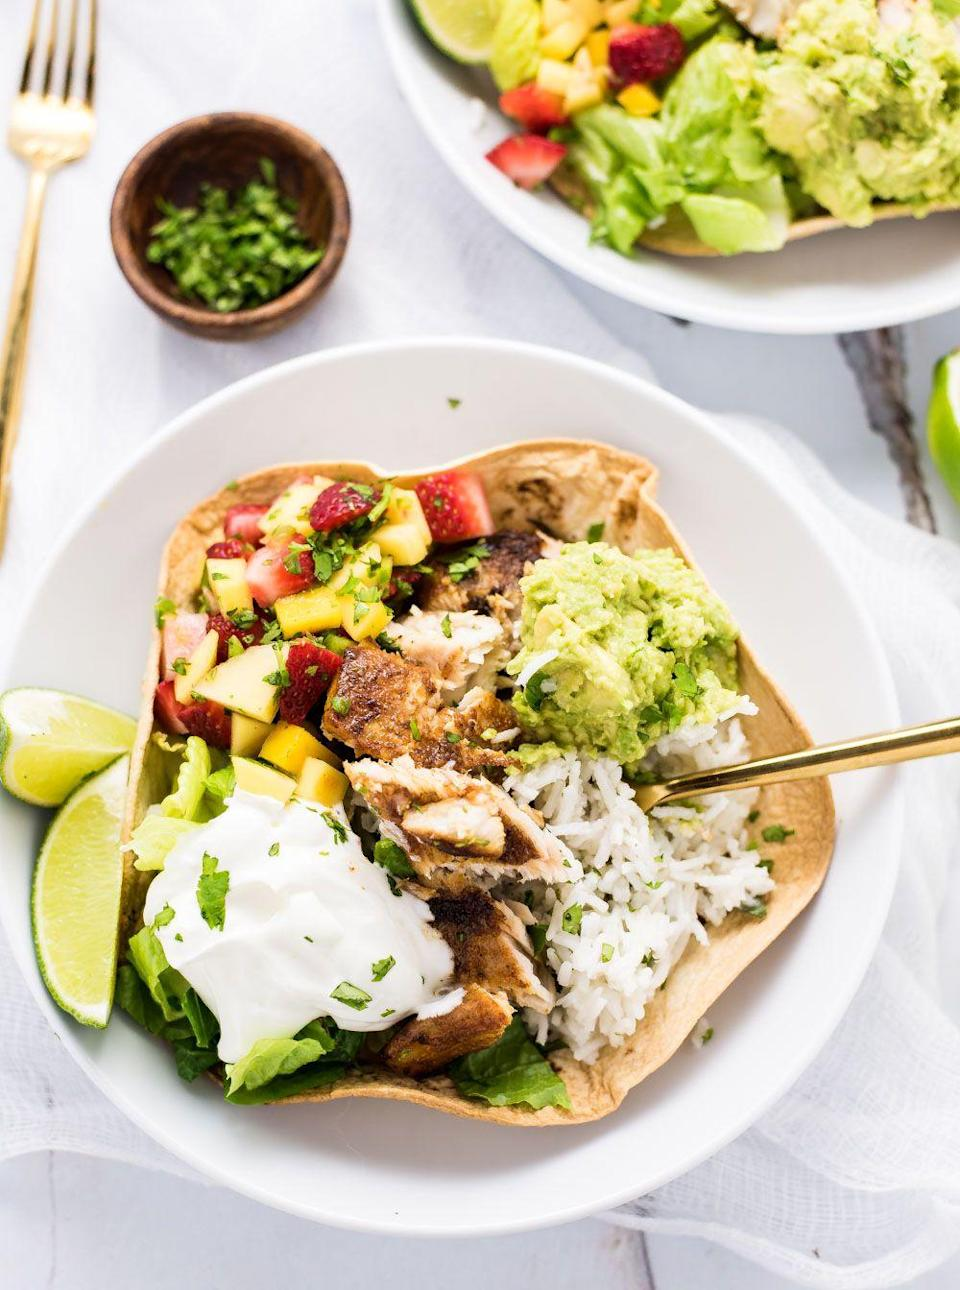 "<p>Way better than standing in line at Chipotle.</p><p>Get the recipe from <a href=""http://www.cookingandbeer.com/2016/06/grilled-fish-taco-burrito-bowls/"" rel=""nofollow noopener"" target=""_blank"" data-ylk=""slk:Cooking and Beer"" class=""link rapid-noclick-resp"">Cooking and Beer</a>.</p>"